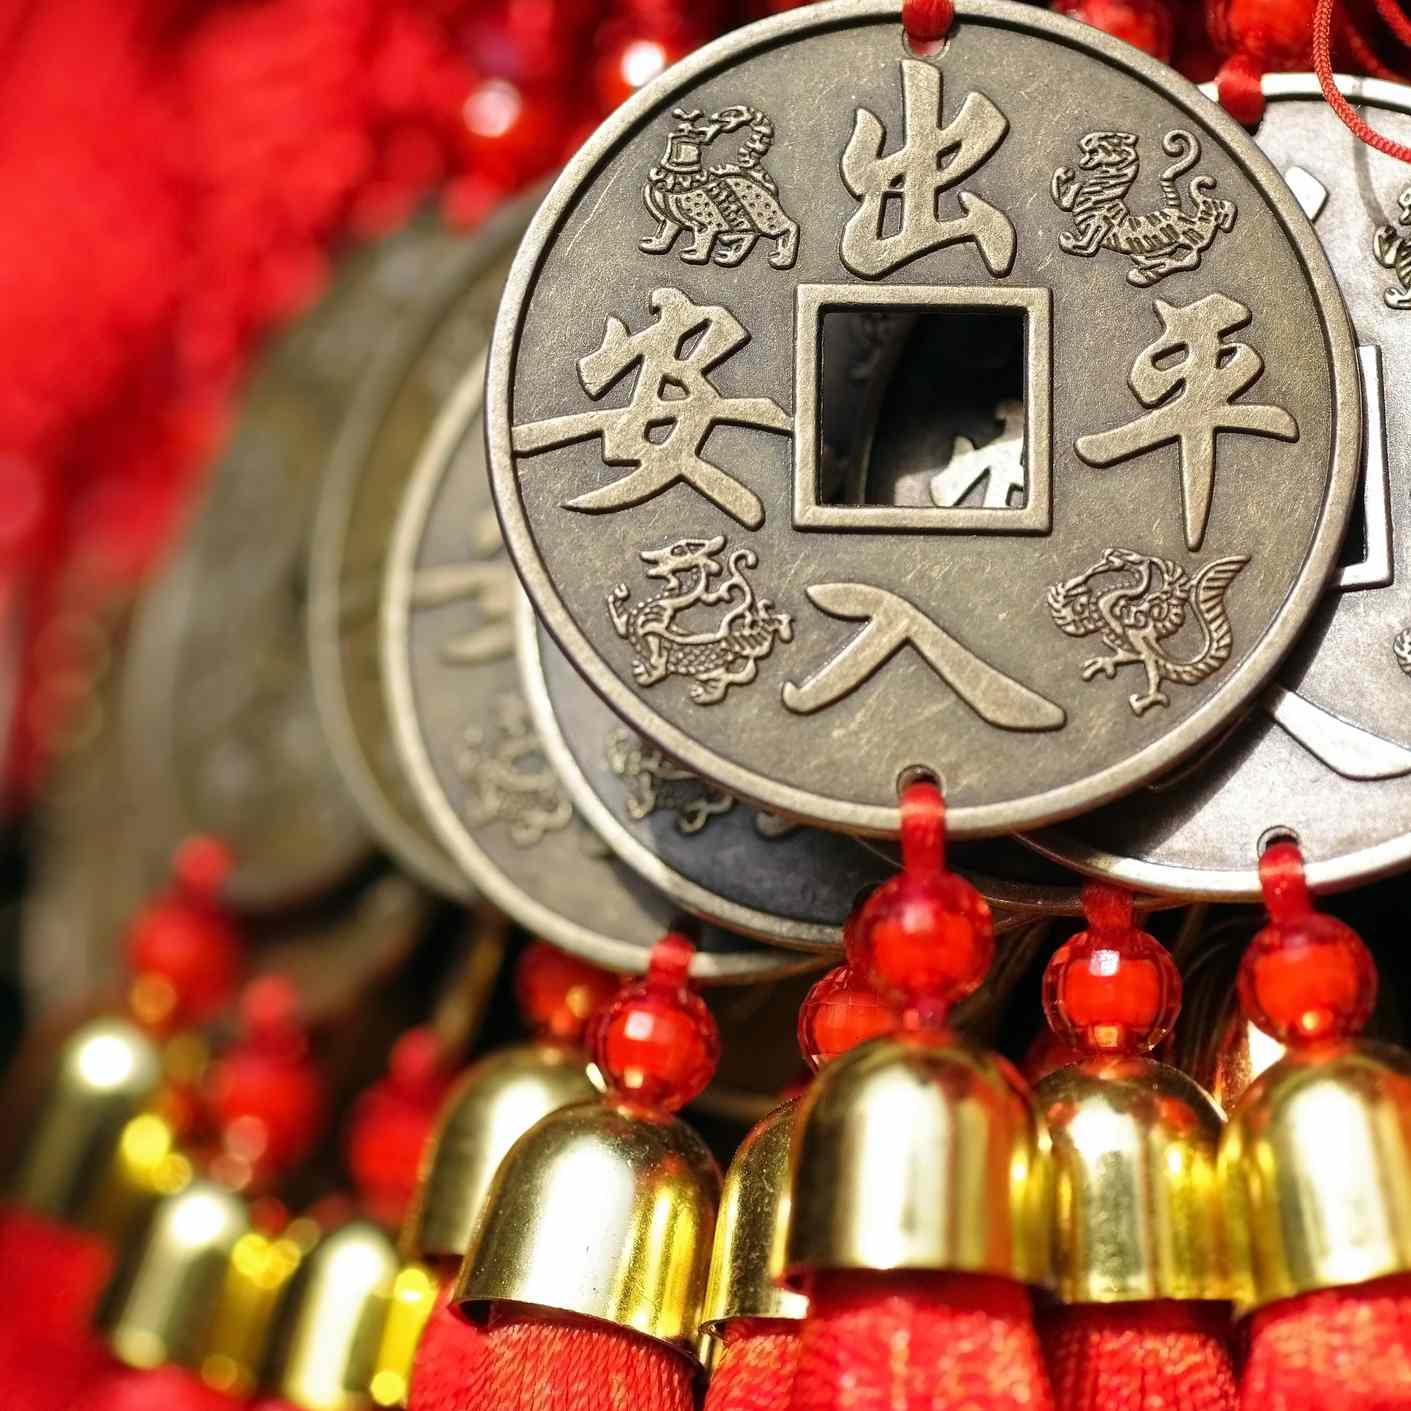 Red Chinese knot tassel ornaments, with large brass coins.